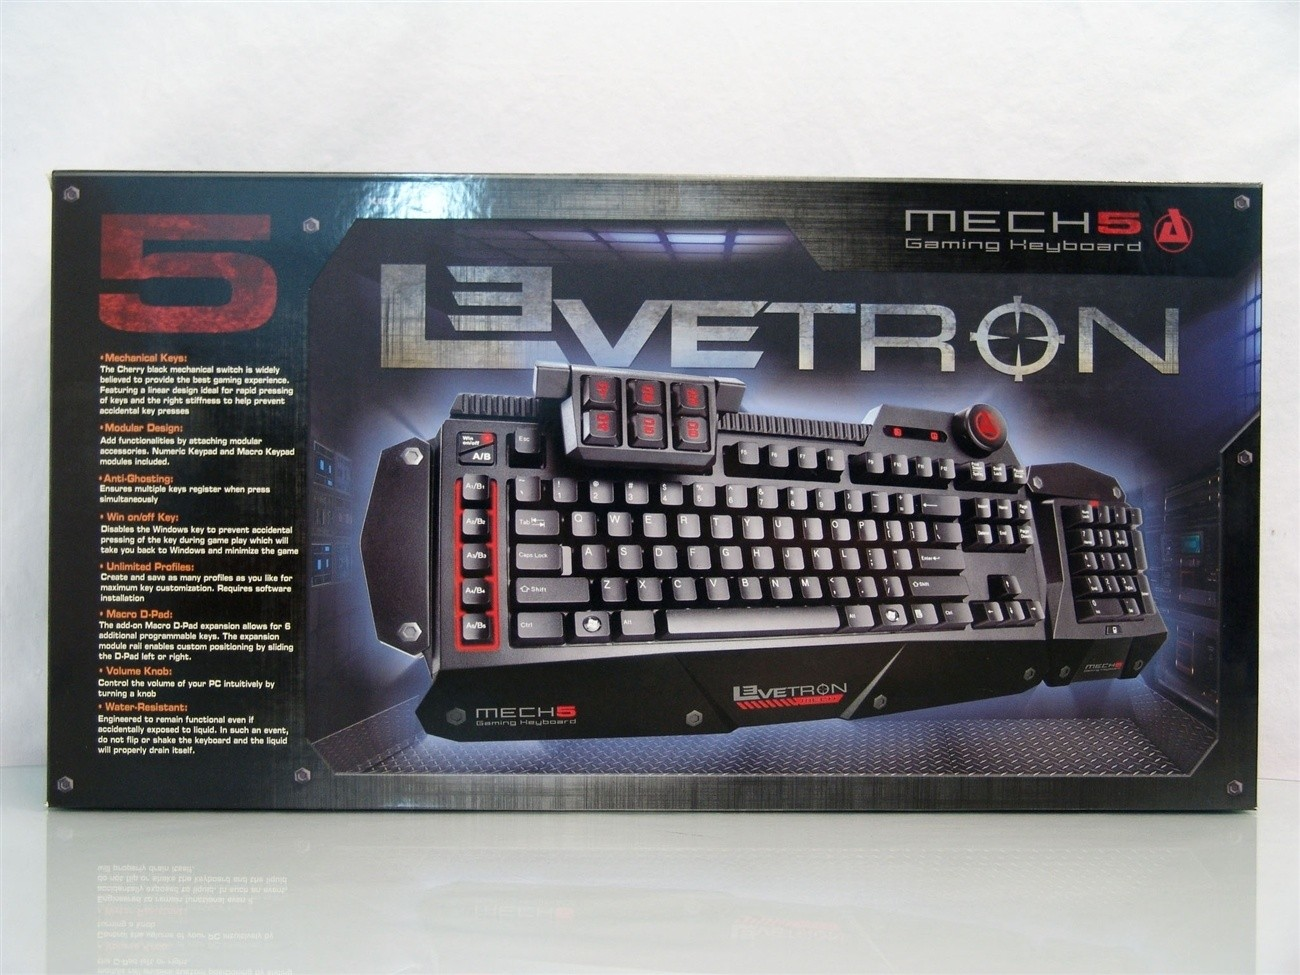 azio_levetron_mech5_gaming_keyboard_review